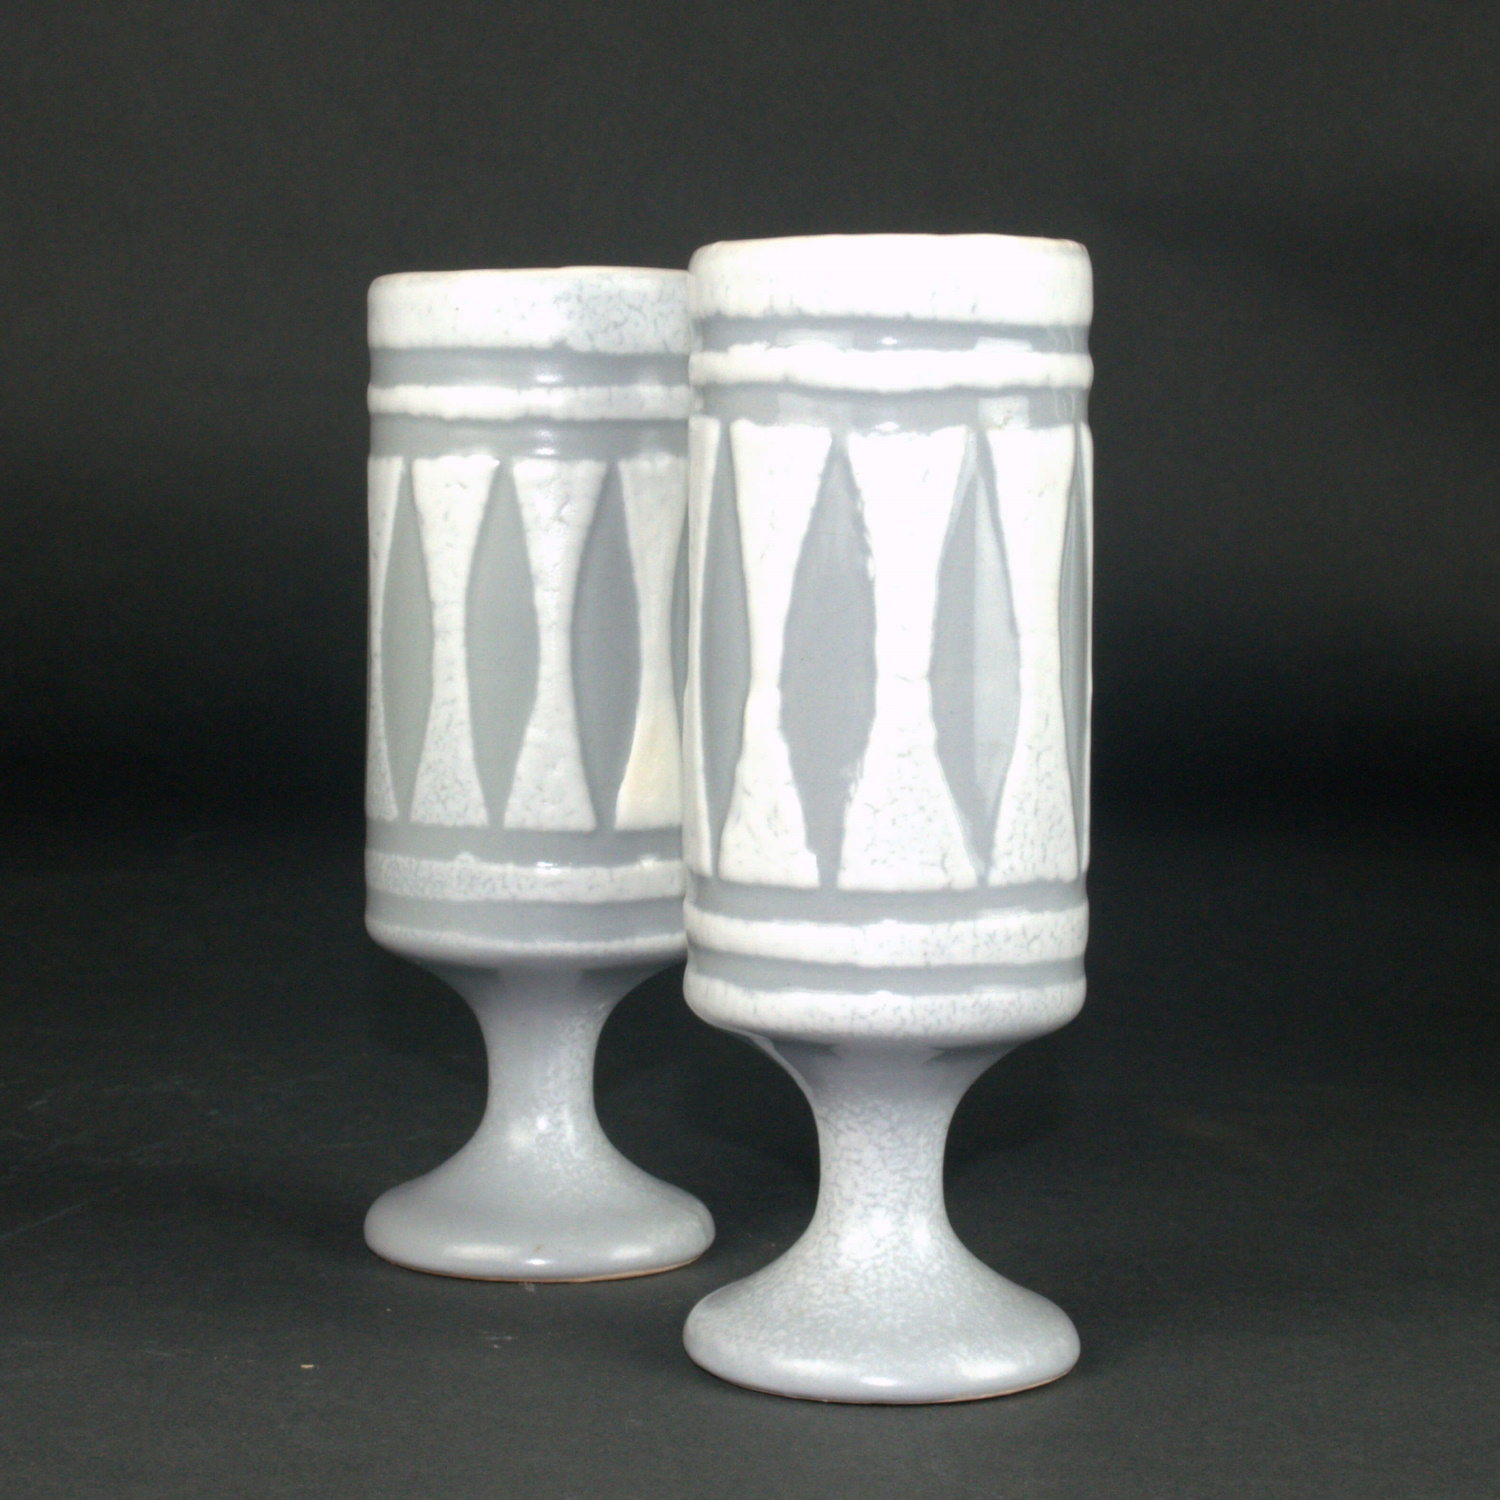 Set Of 2 Ceramic Mugs With Grey Motive By Roger Capron 1 2(1)